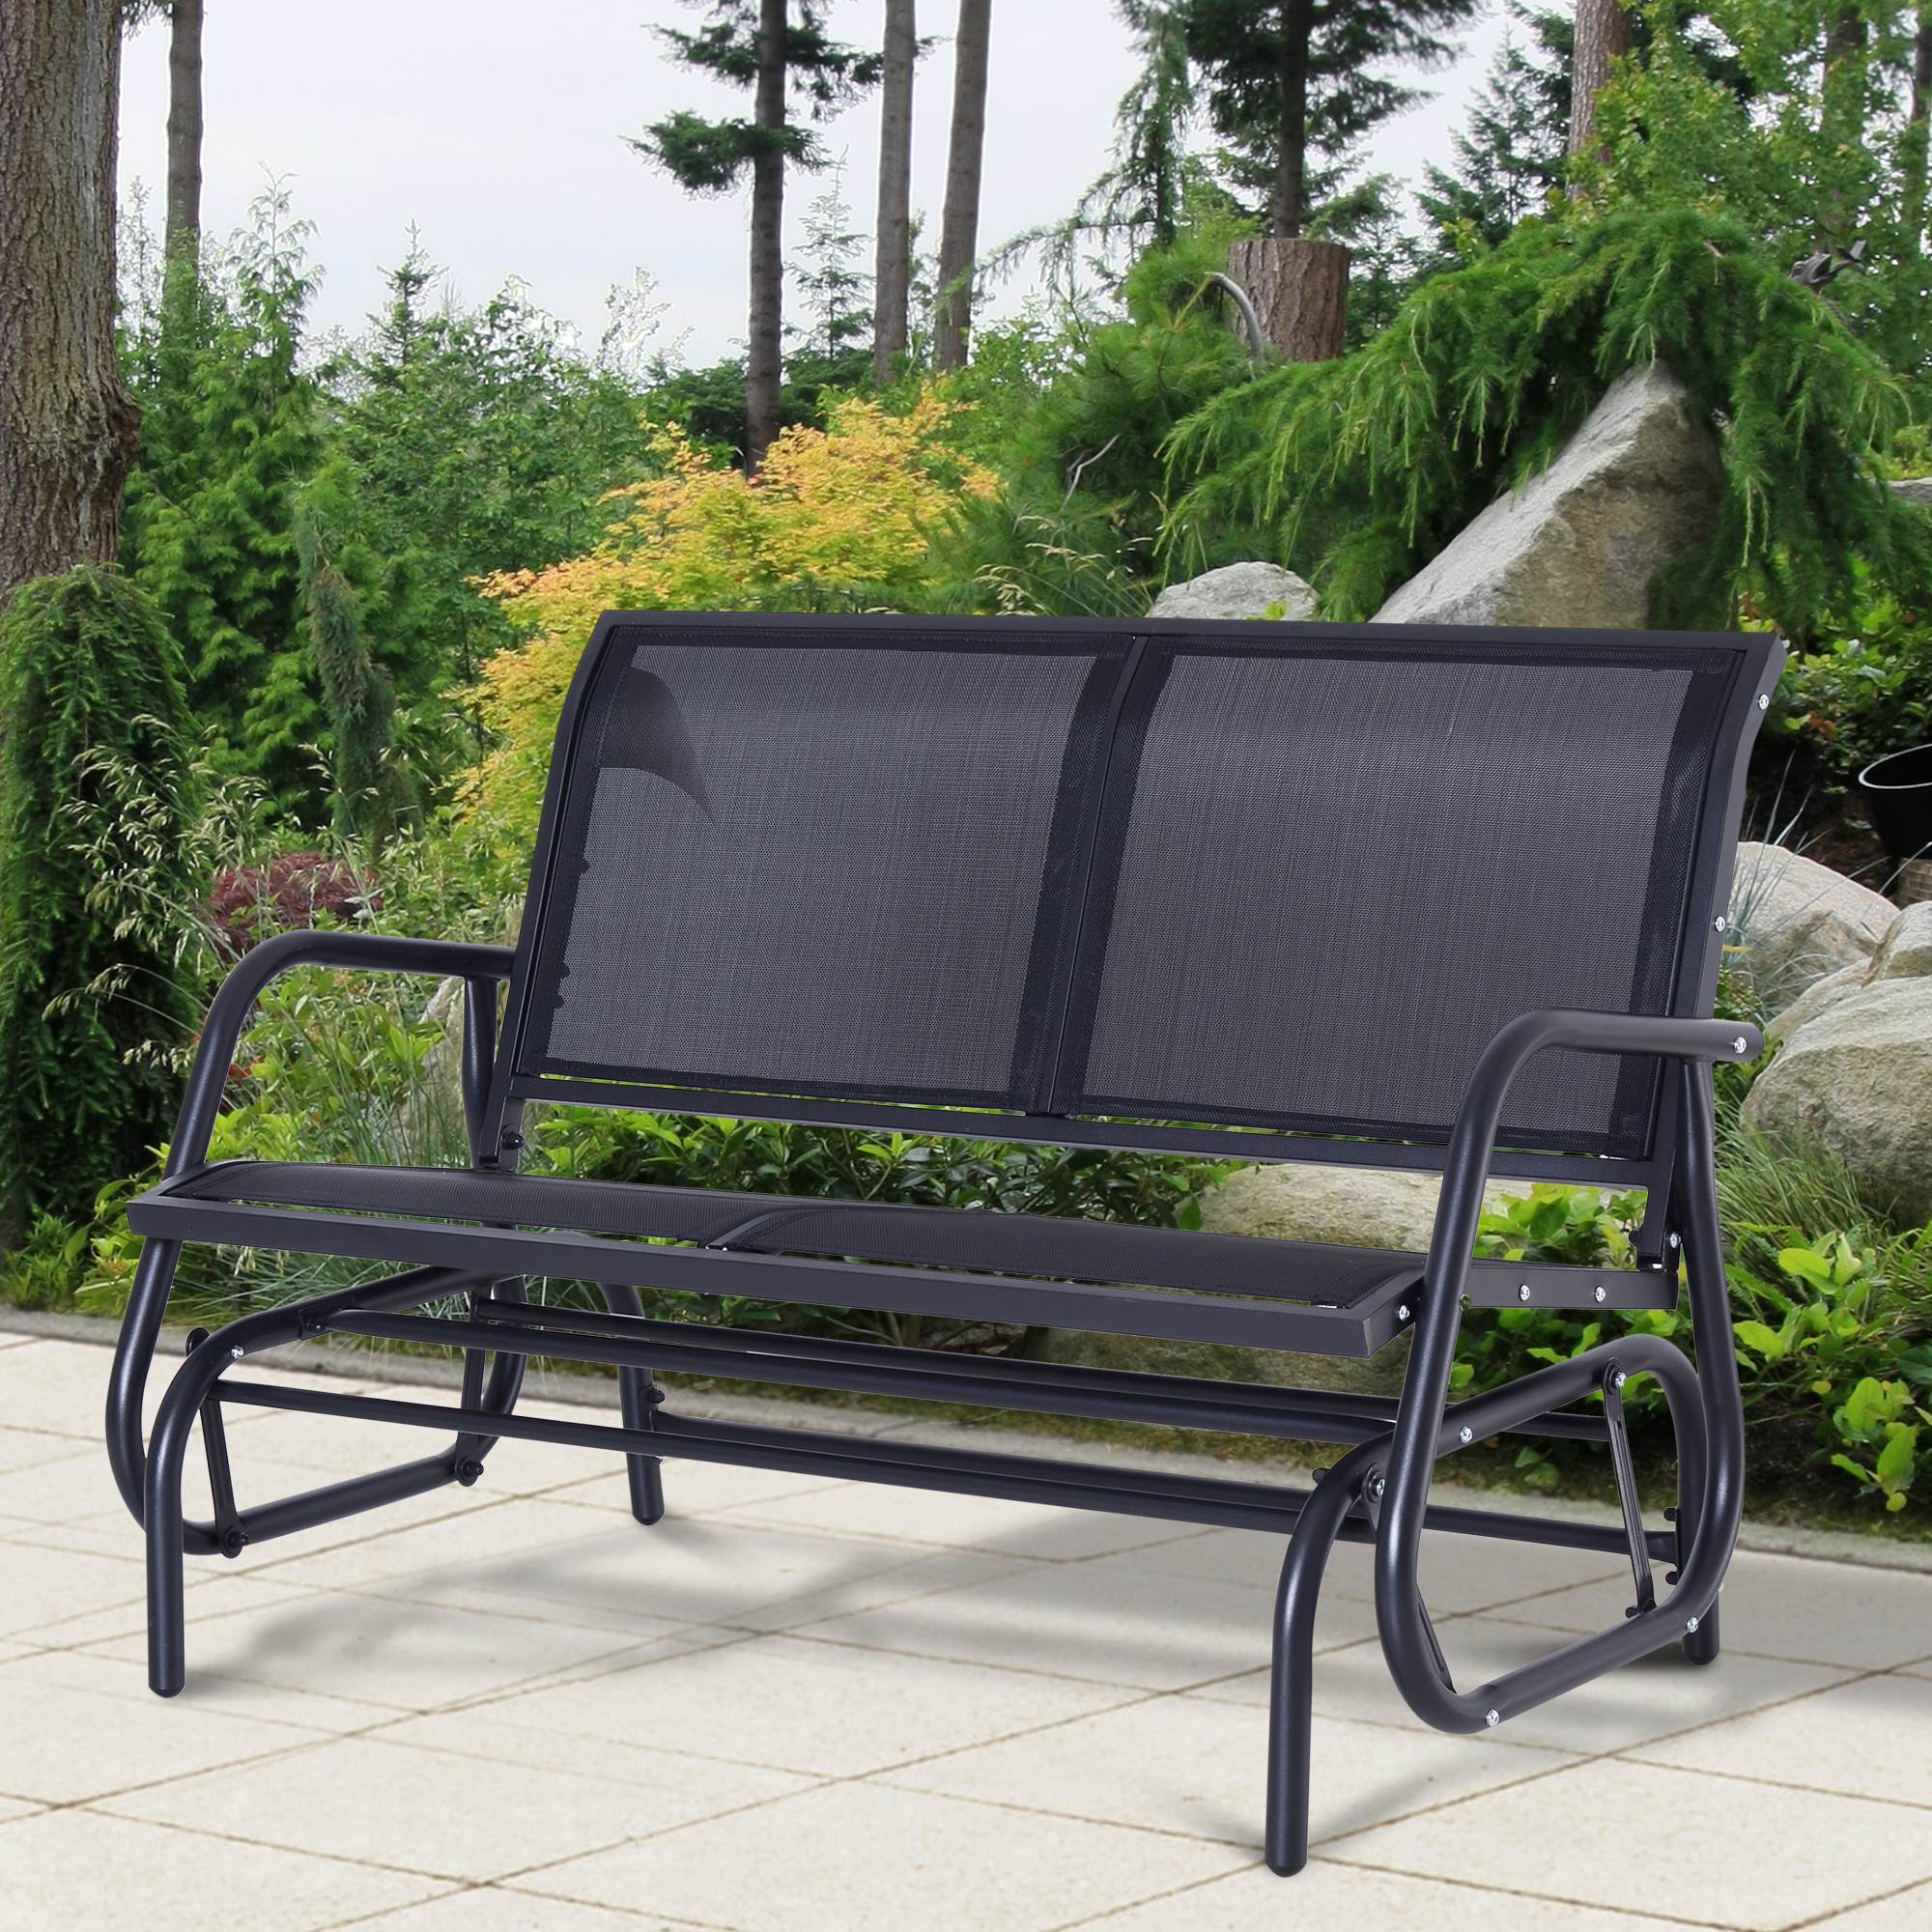 Details About Outsunny Patio Garden Glider Bench 2 Person Double Swing  Chair Rocker Deck Black Within Trendy Aluminum Outdoor Double Glider Benches (View 12 of 30)